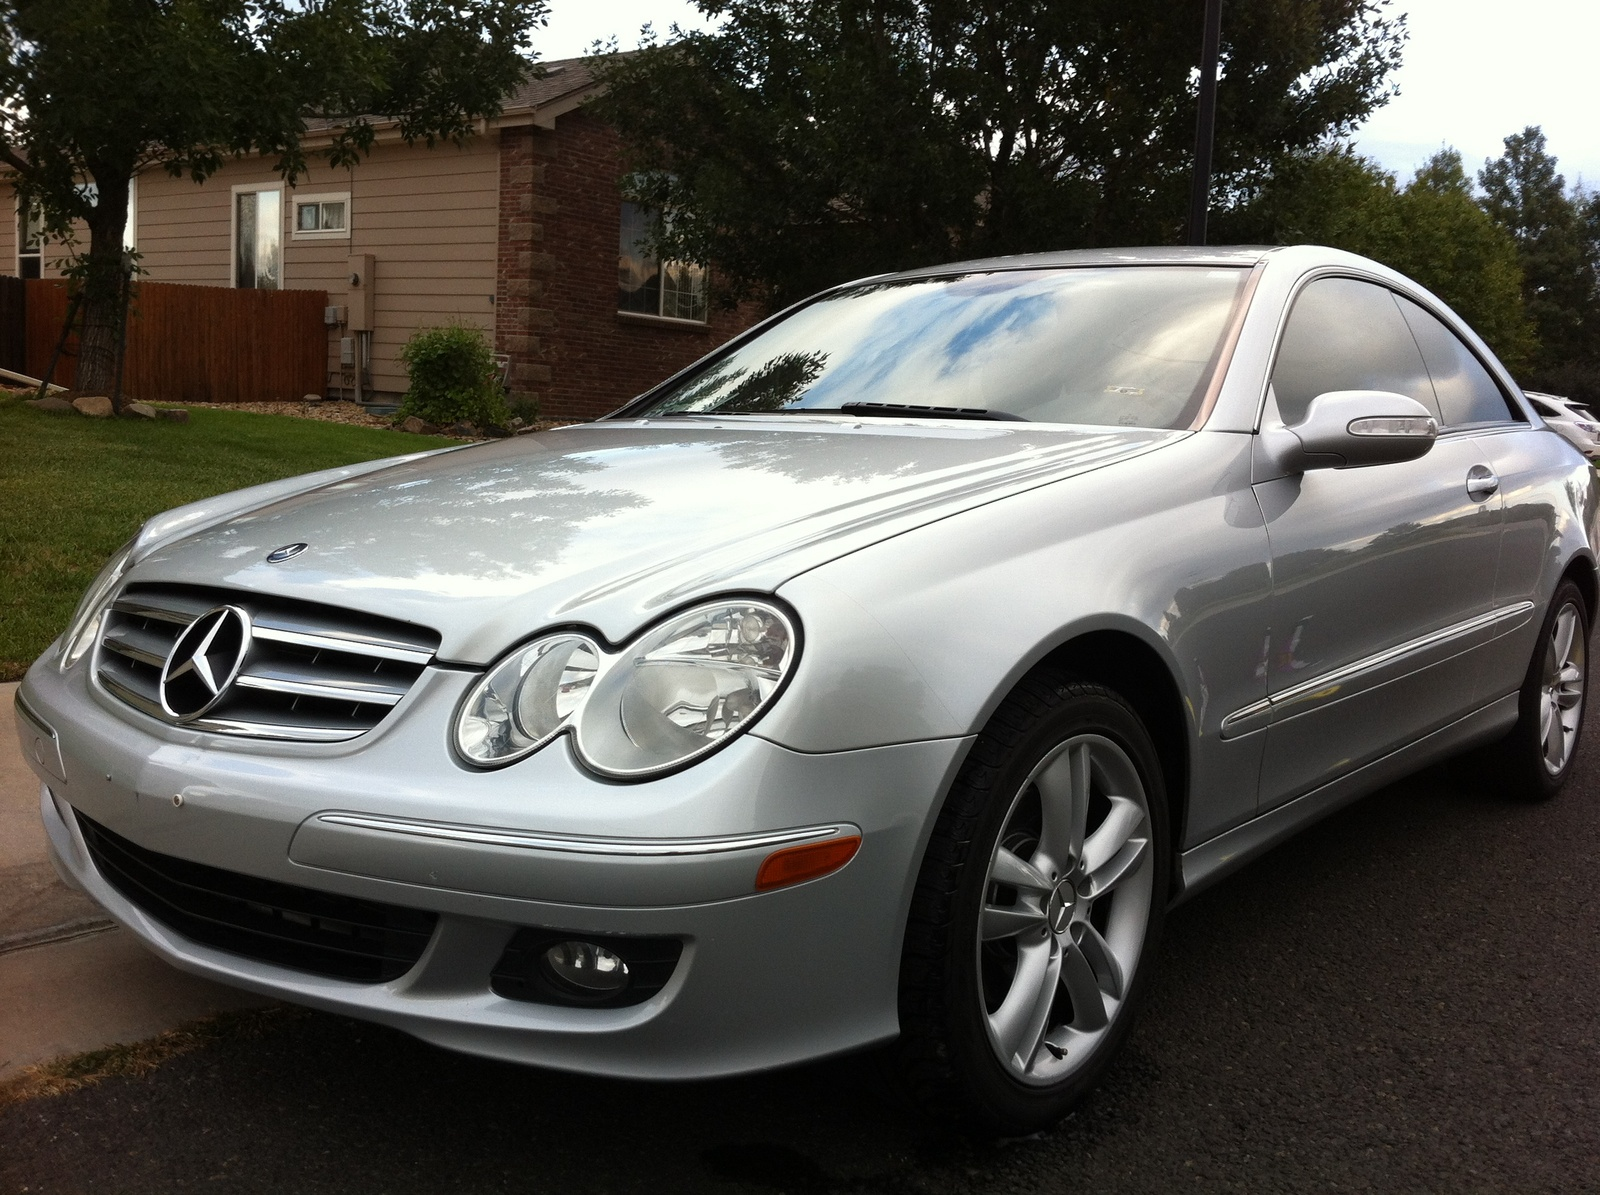 2007 mercedes benz clk class pictures cargurus For2007 Mercedes Benz Clk